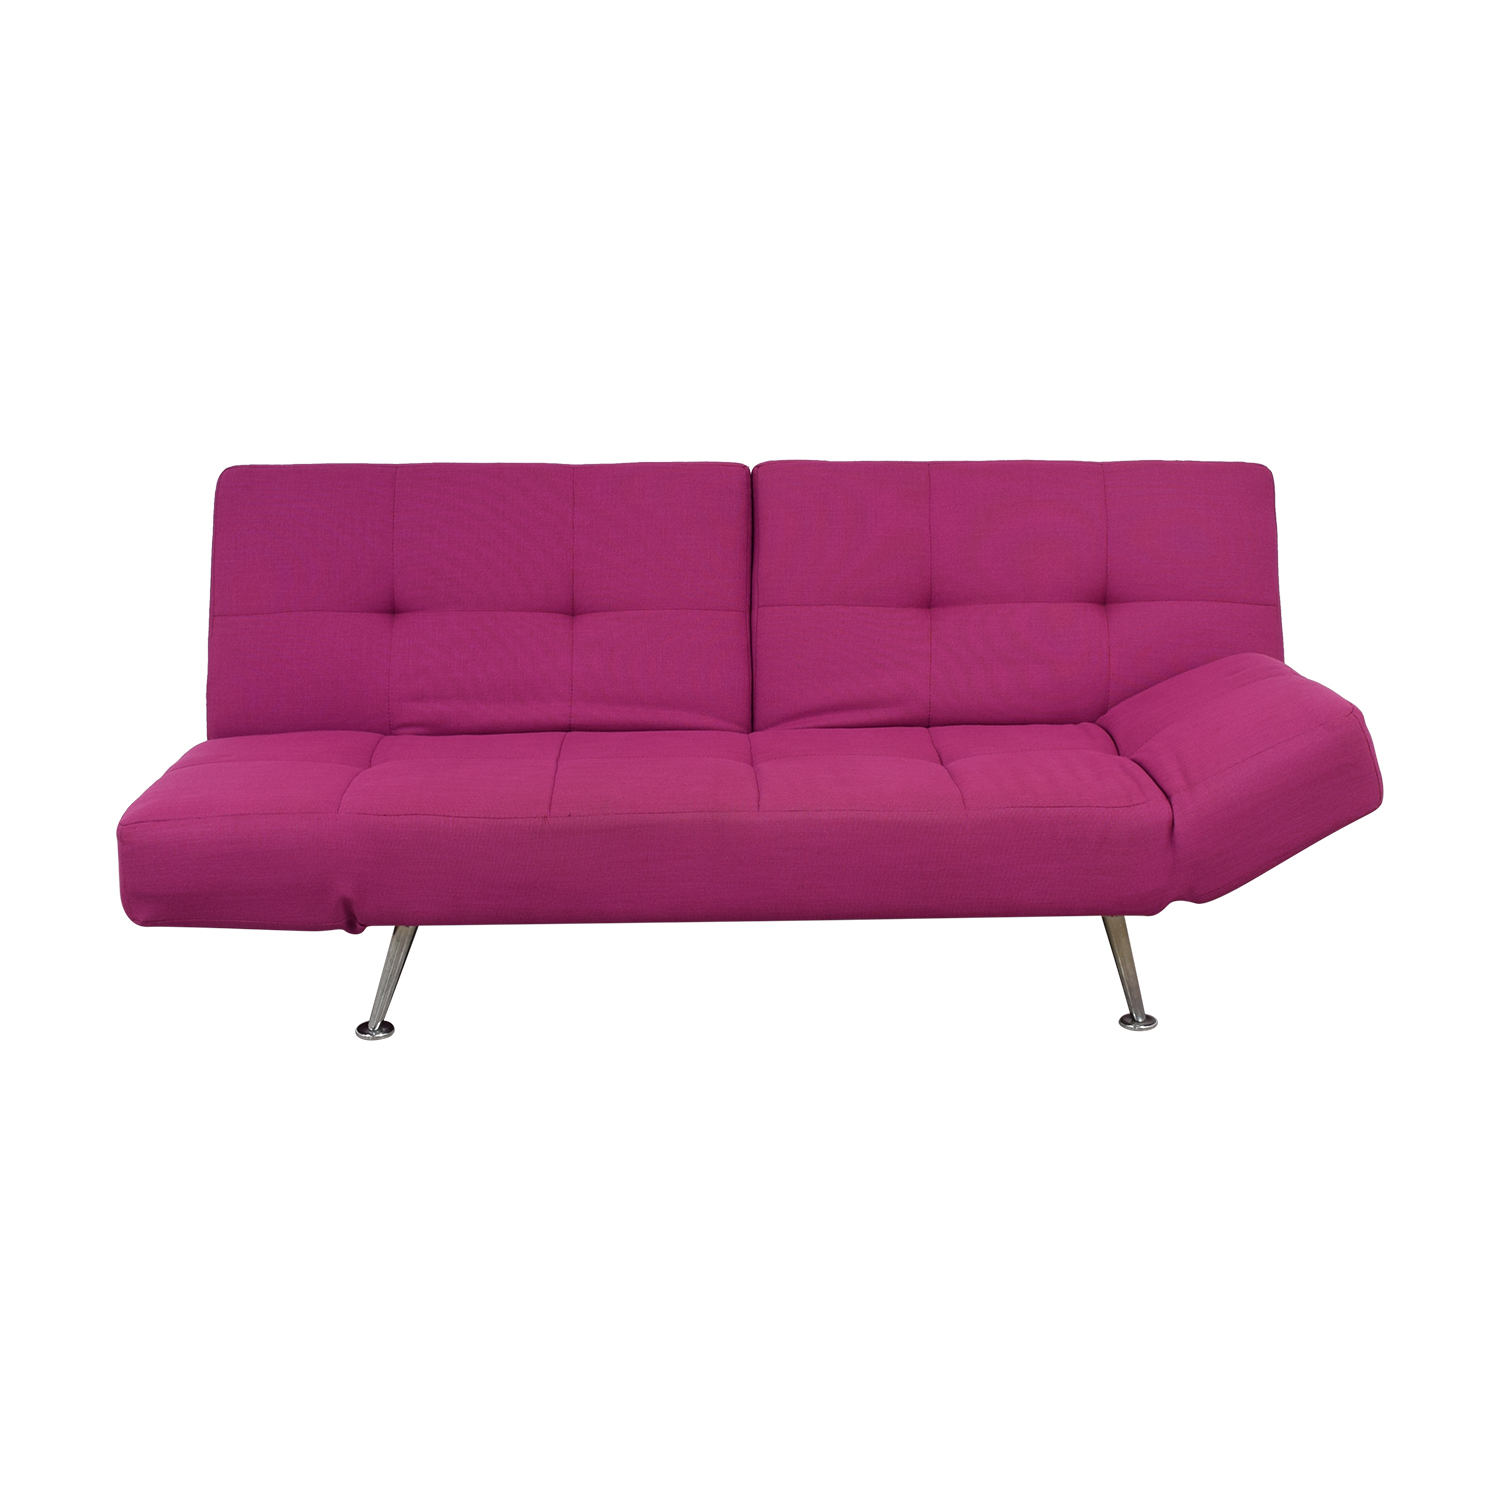 shop Lazzoni Lazzoni Magenta Tufted Sleeper Sofa online